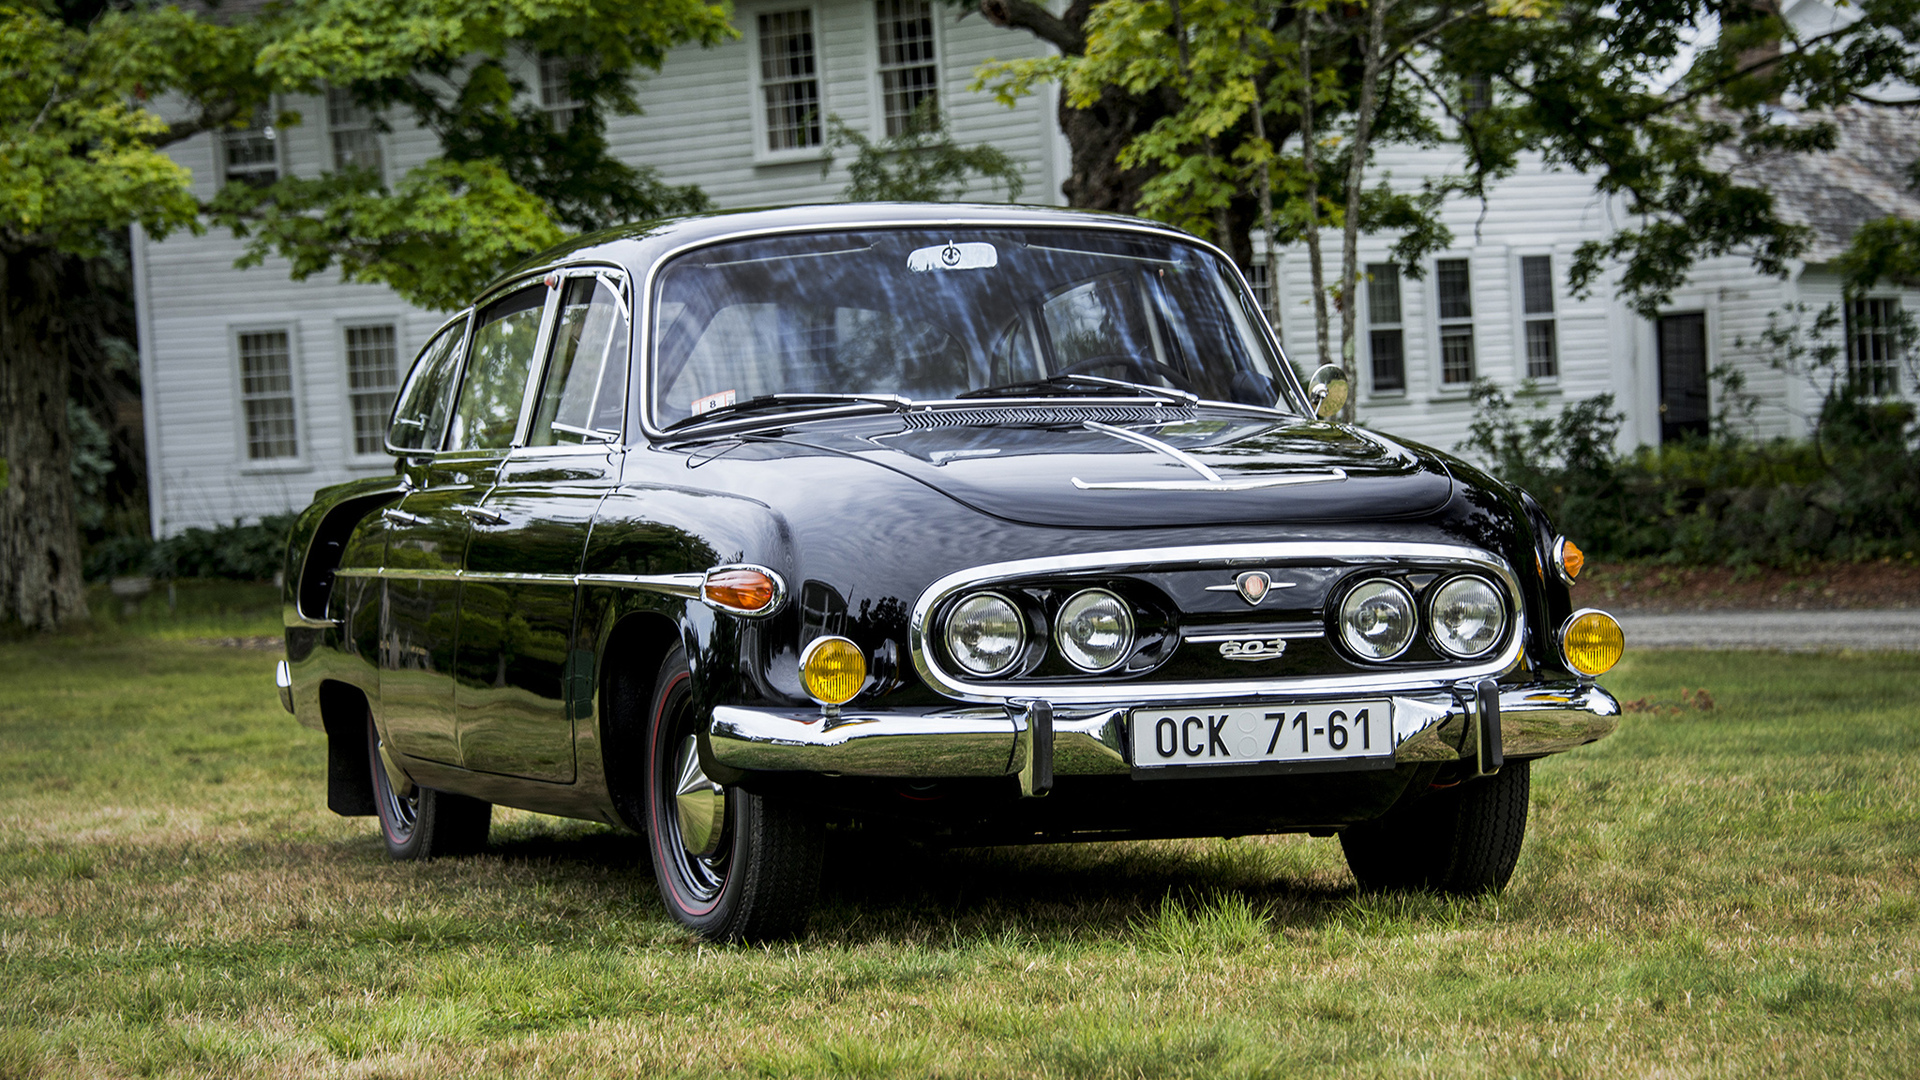 We Buy Used Cars >> Czech brand Tatra could be resurrected with retro-styled model